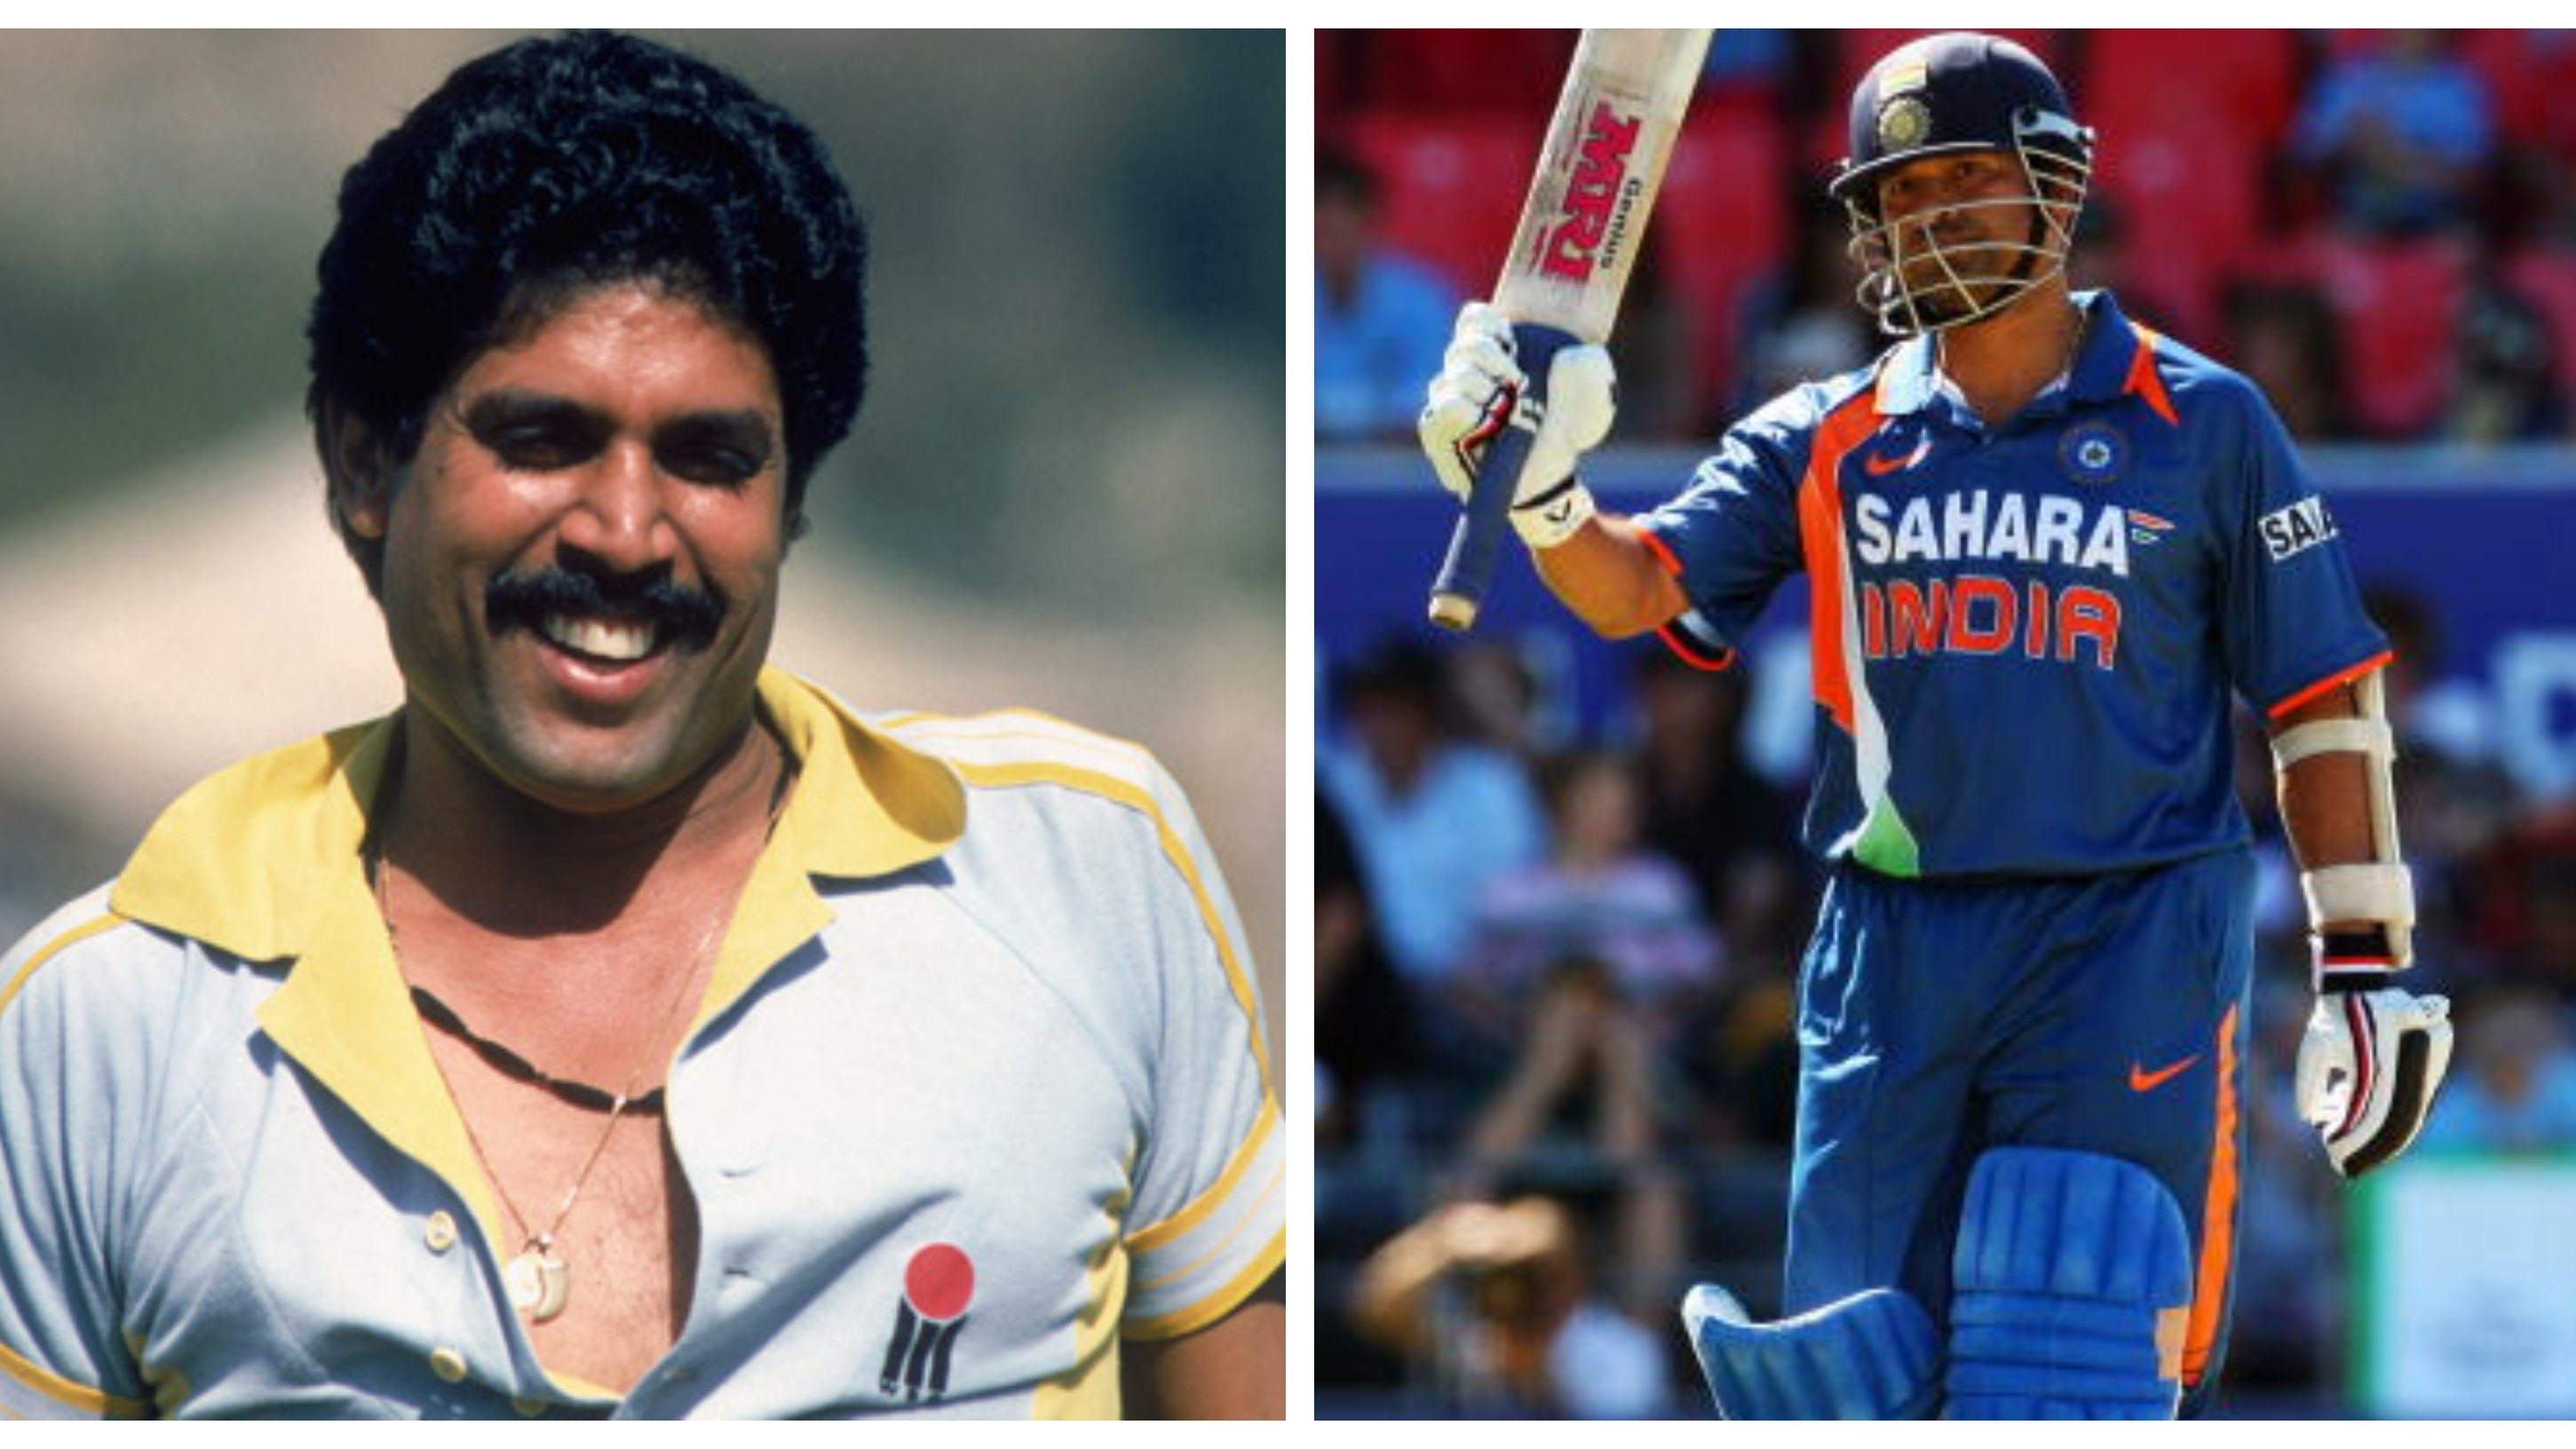 Pak-origin UK MP wants knighthood bestowed over to Kapil Dev and Sachin Tendulkar